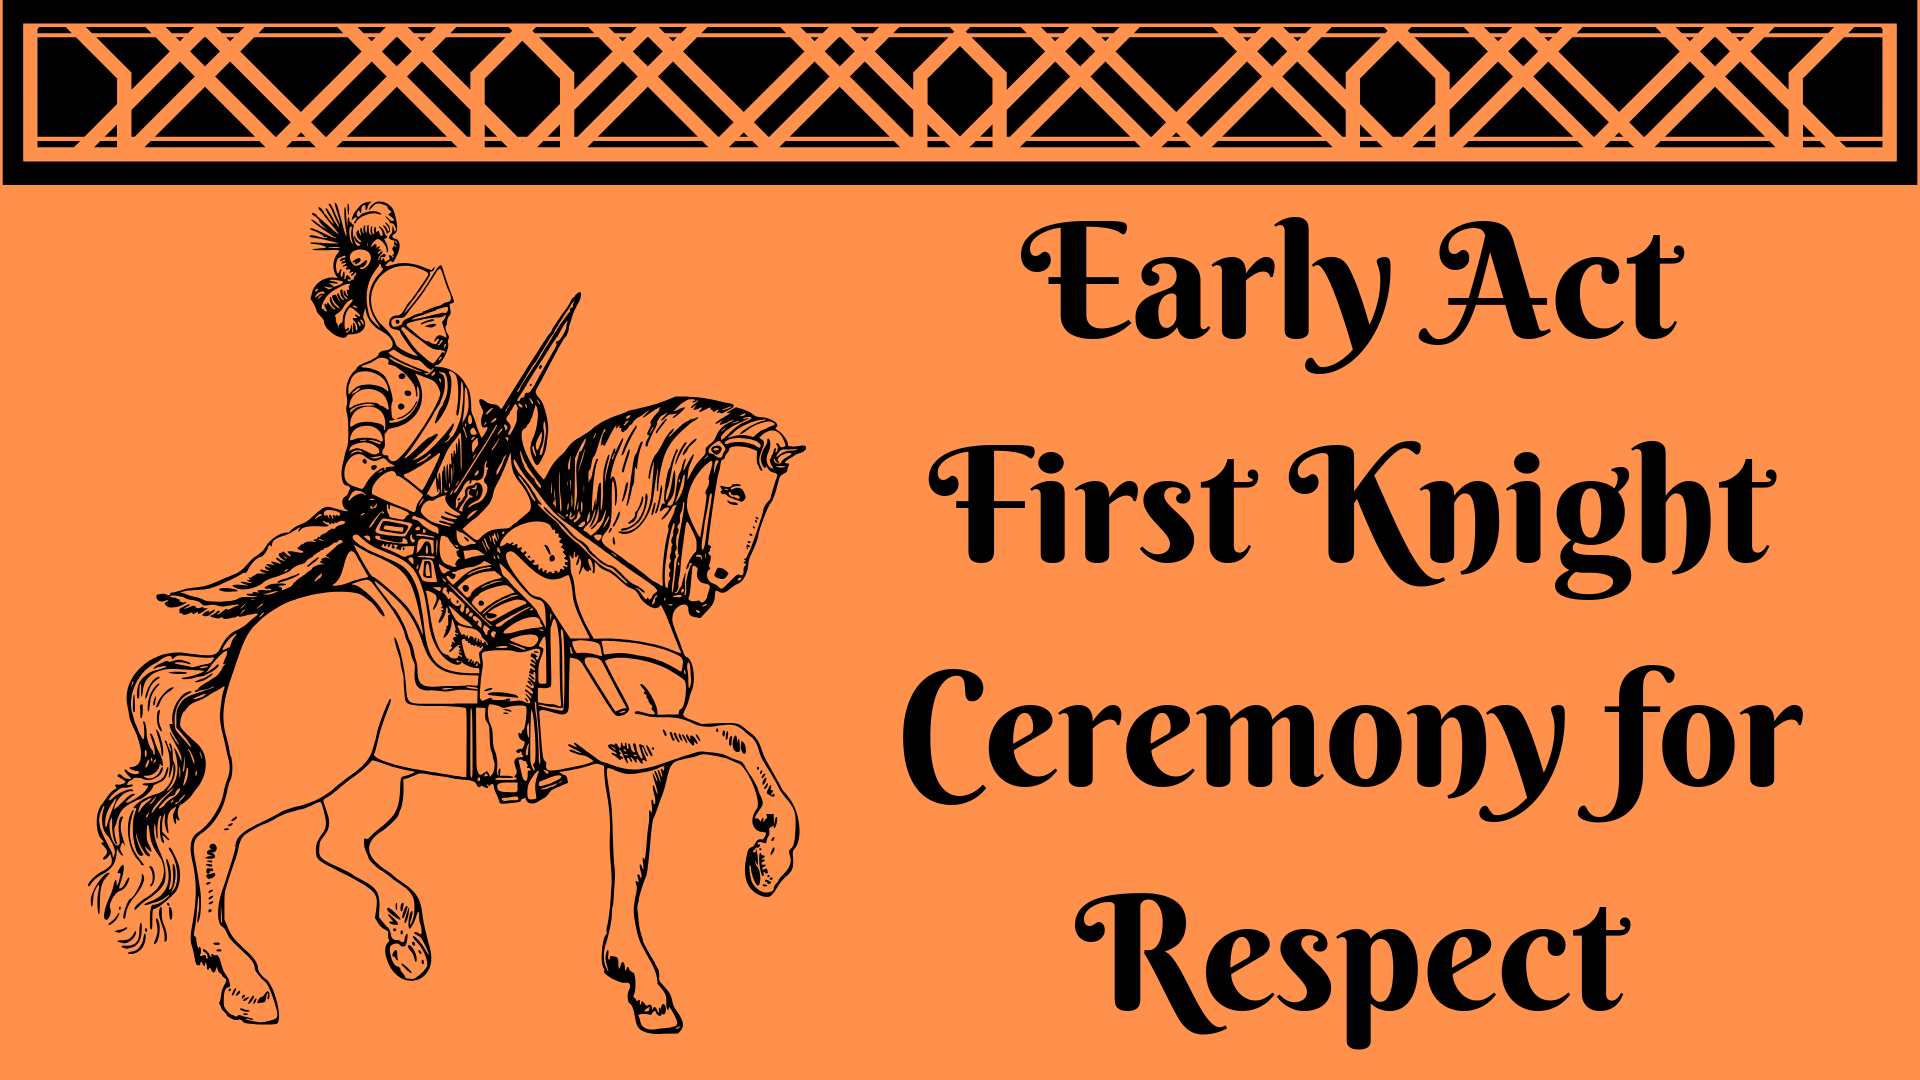 Early Act First Knight